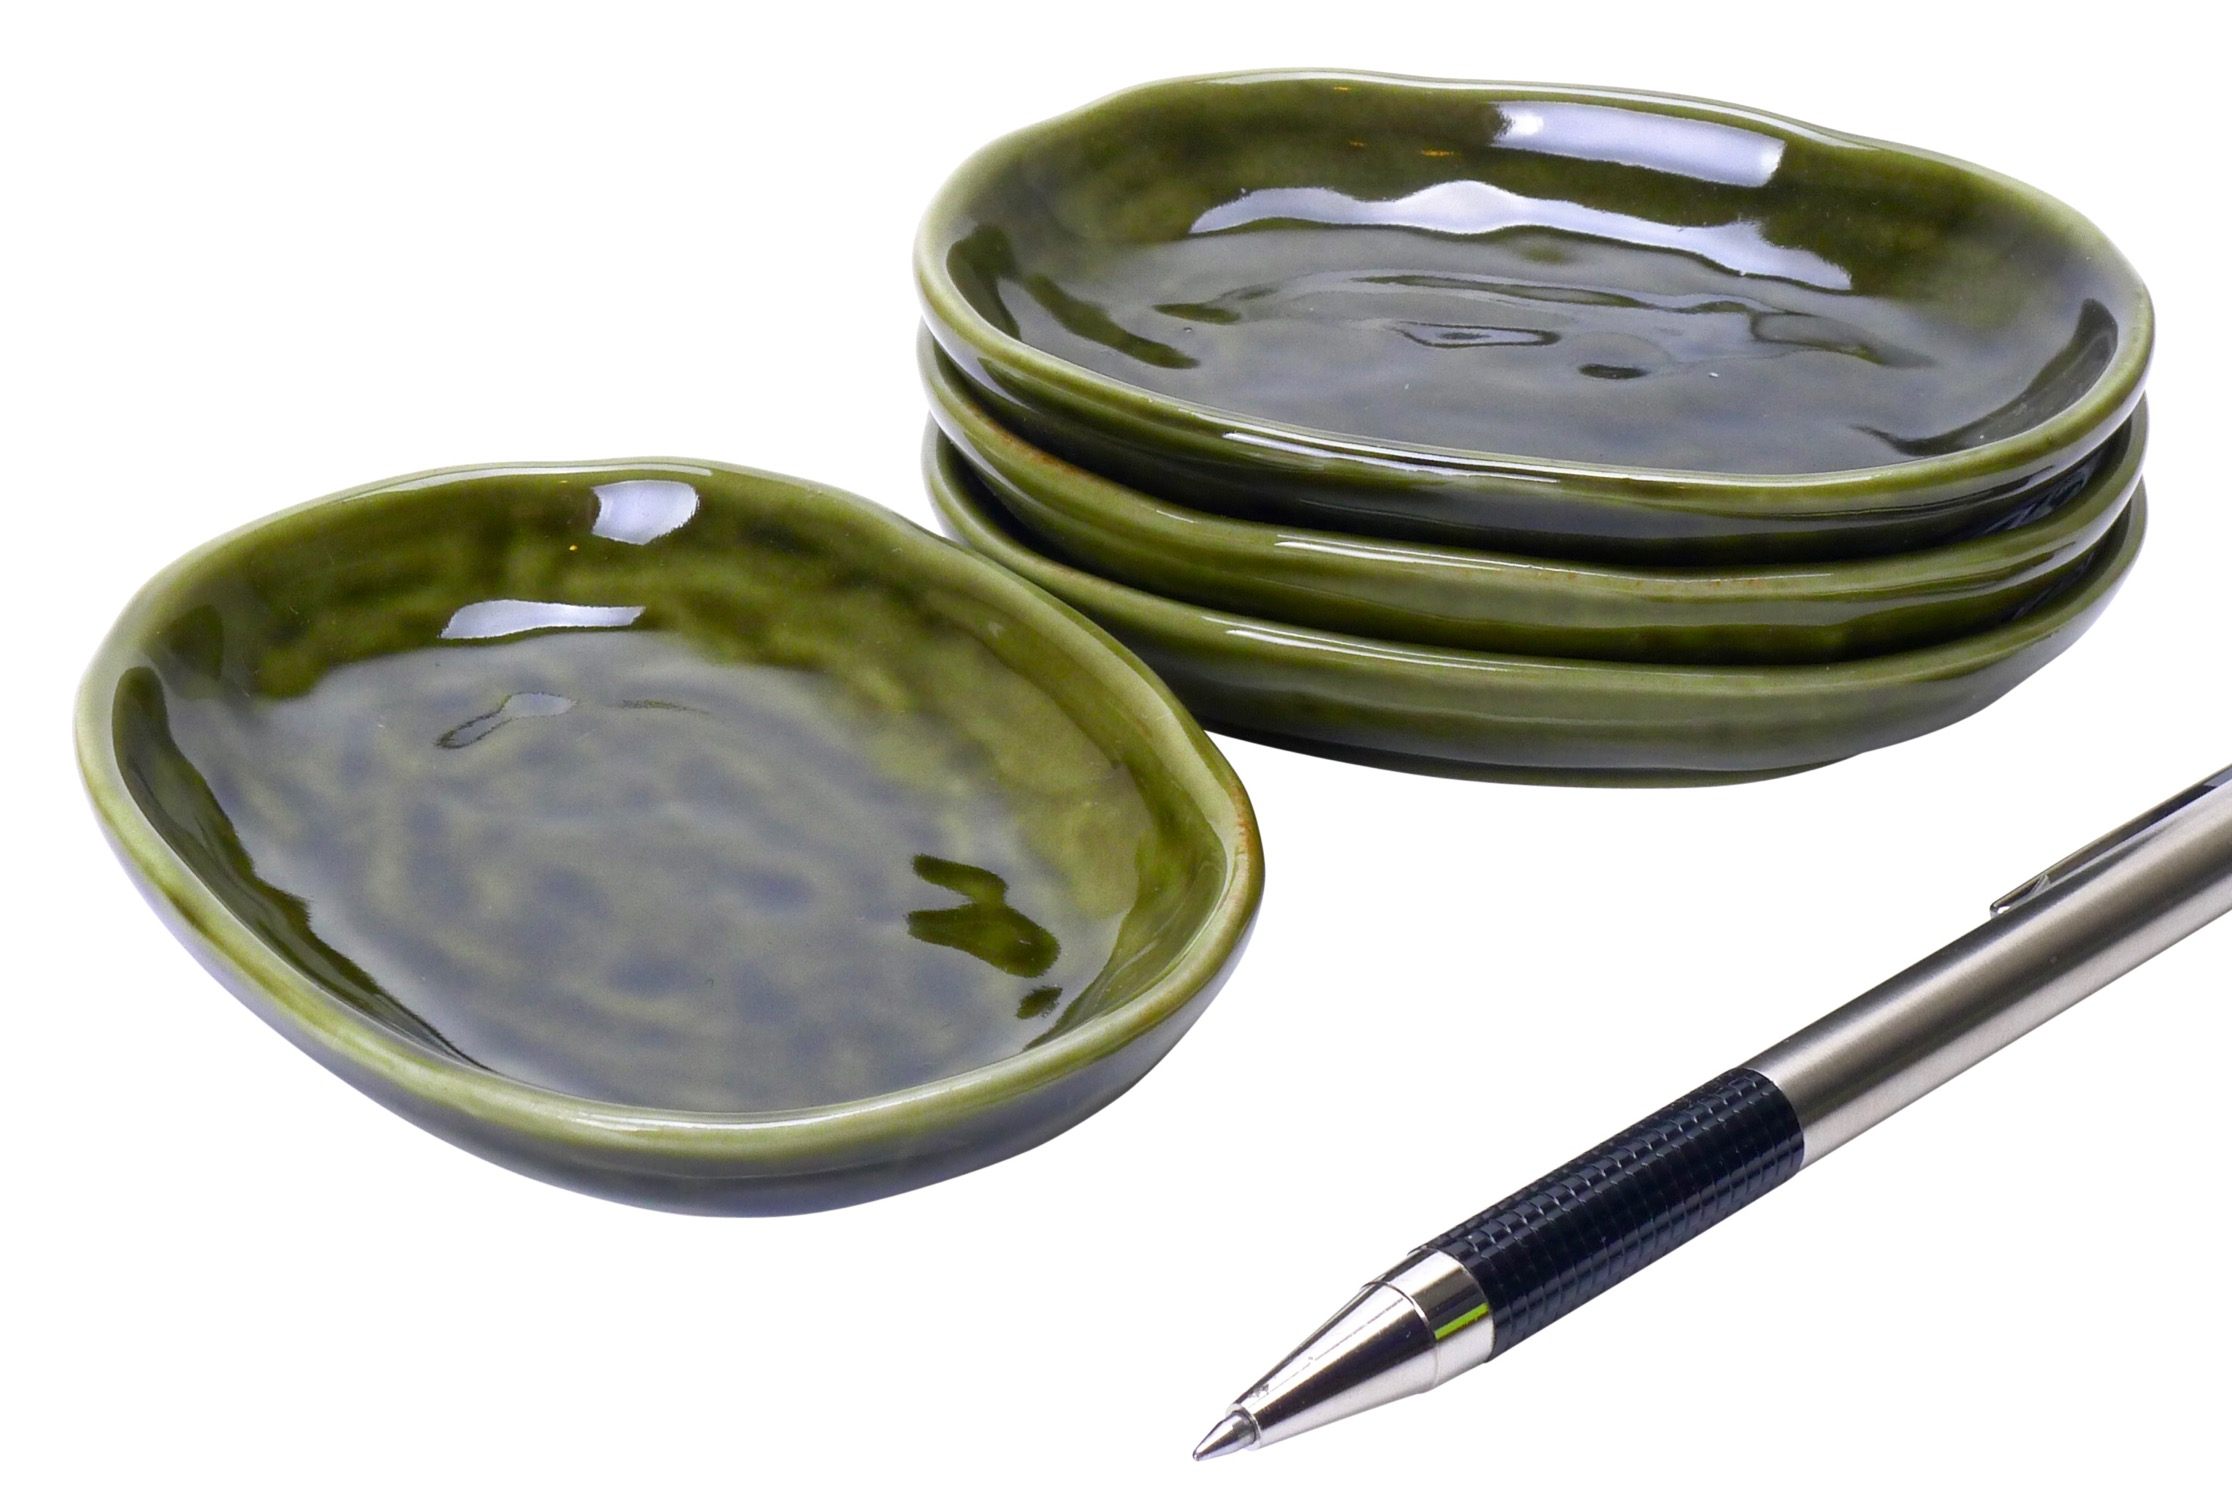 Image of Porcelain Appetizer Dish, Dark Handglazed Green,  3.5-Inch, Set Of Fou